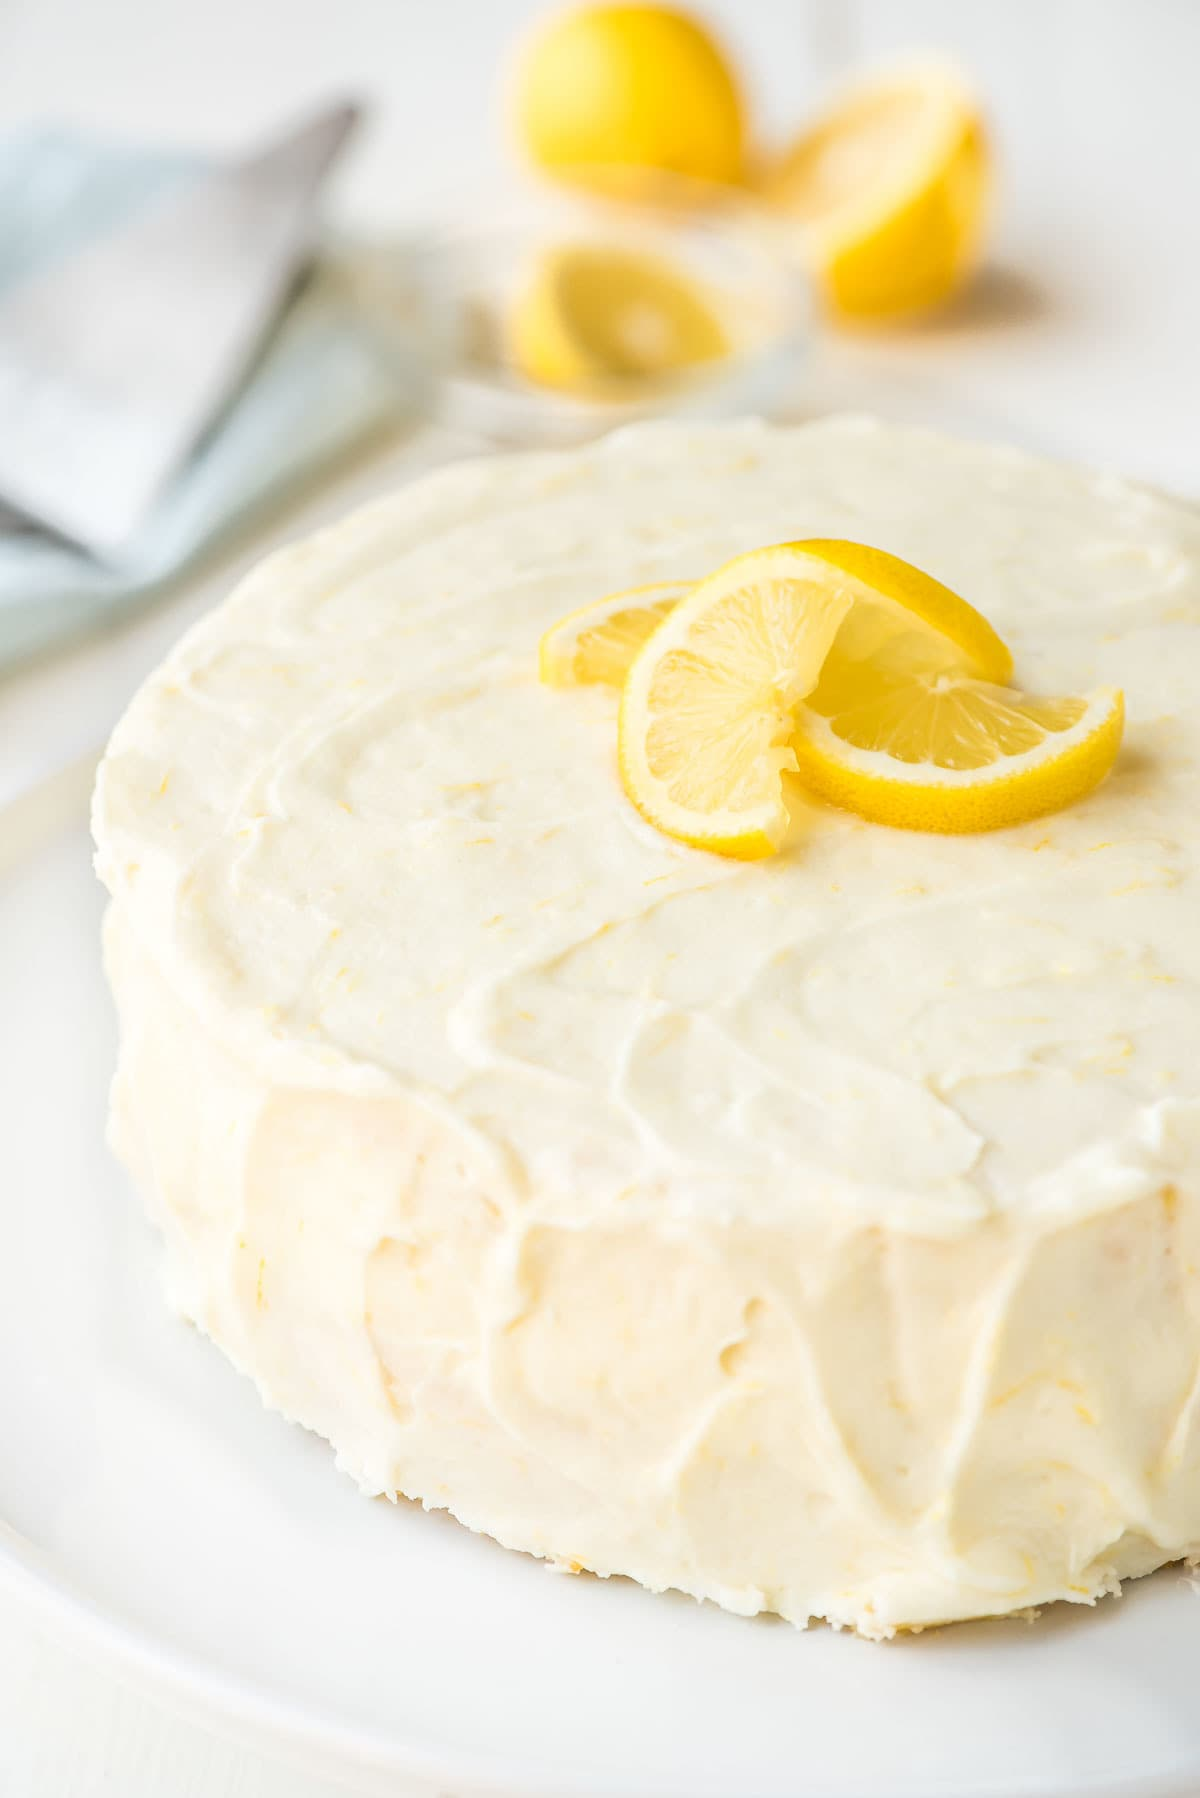 Beautifully frosted lemon cake with lemon cream cheese frosting